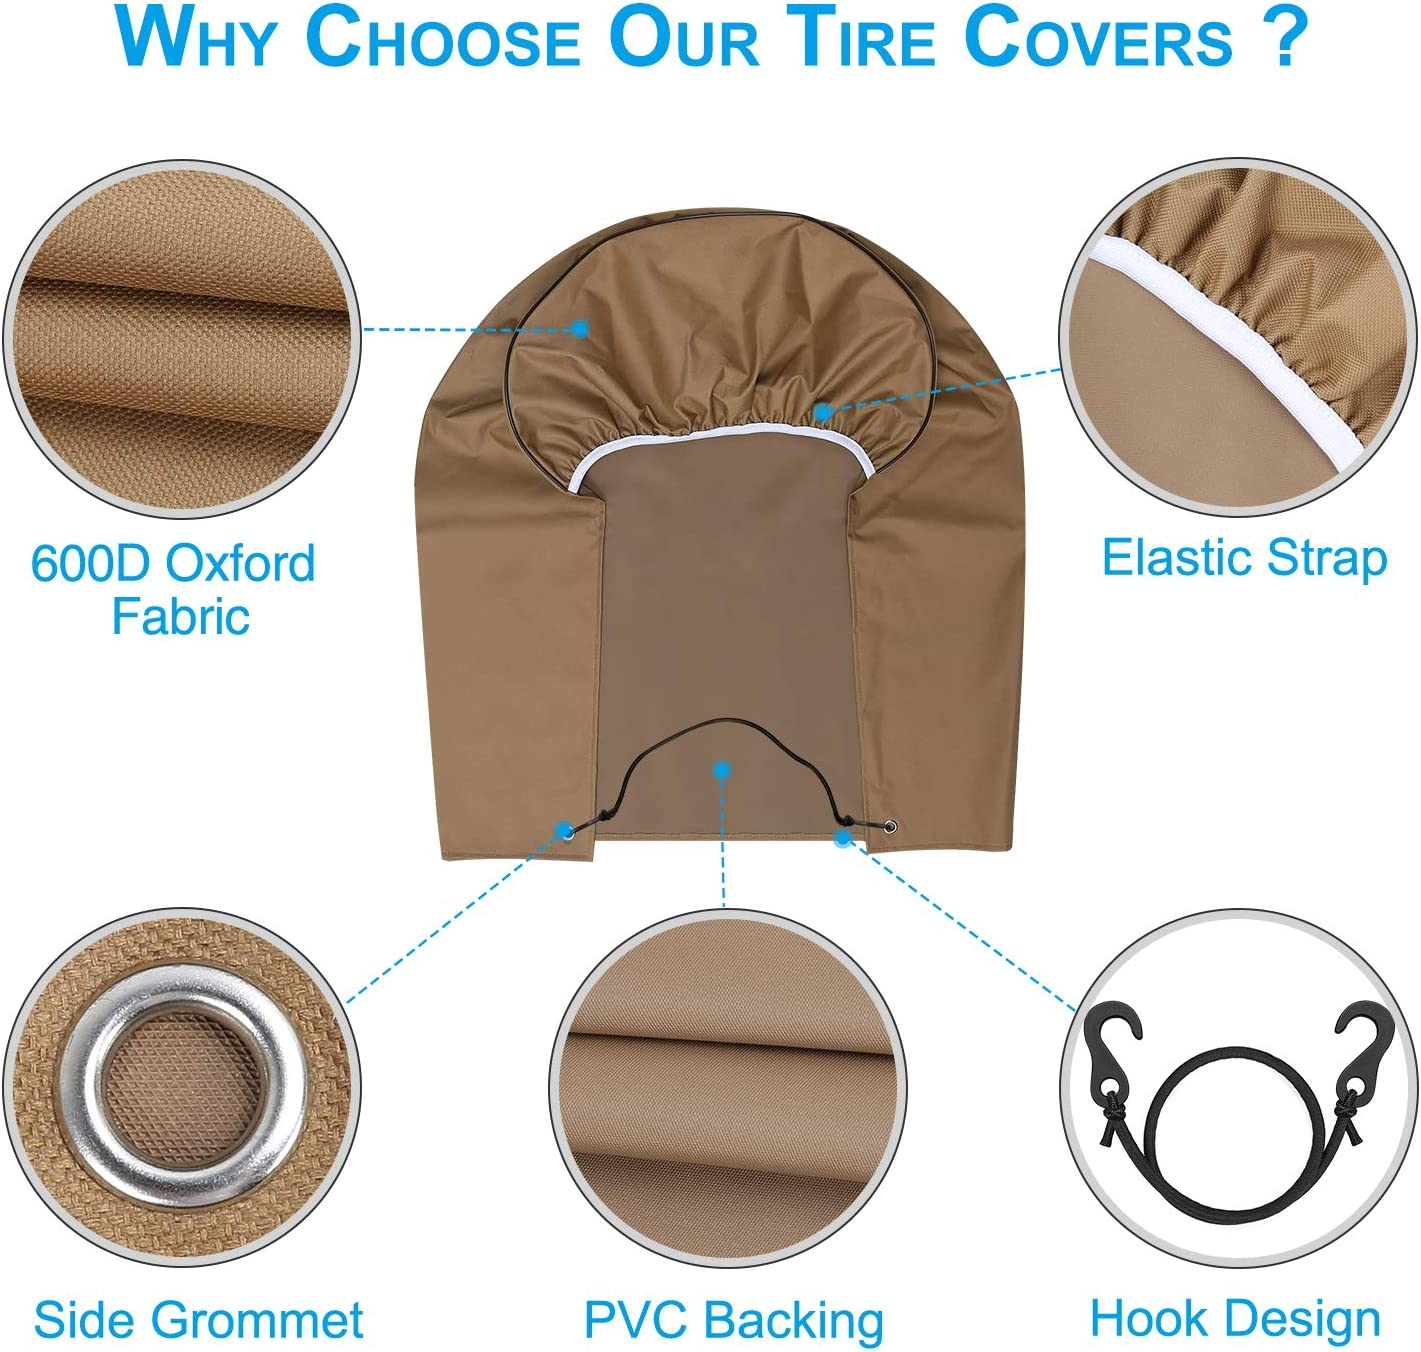 Tire Covers for RV Wheel Fonzier Set of 4 Motorhome Wheel Covers Waterproof Oxford Cotton Tire Protectors Fits 26.75-29 Tire Diameters for Trailer Camper Truck Auto